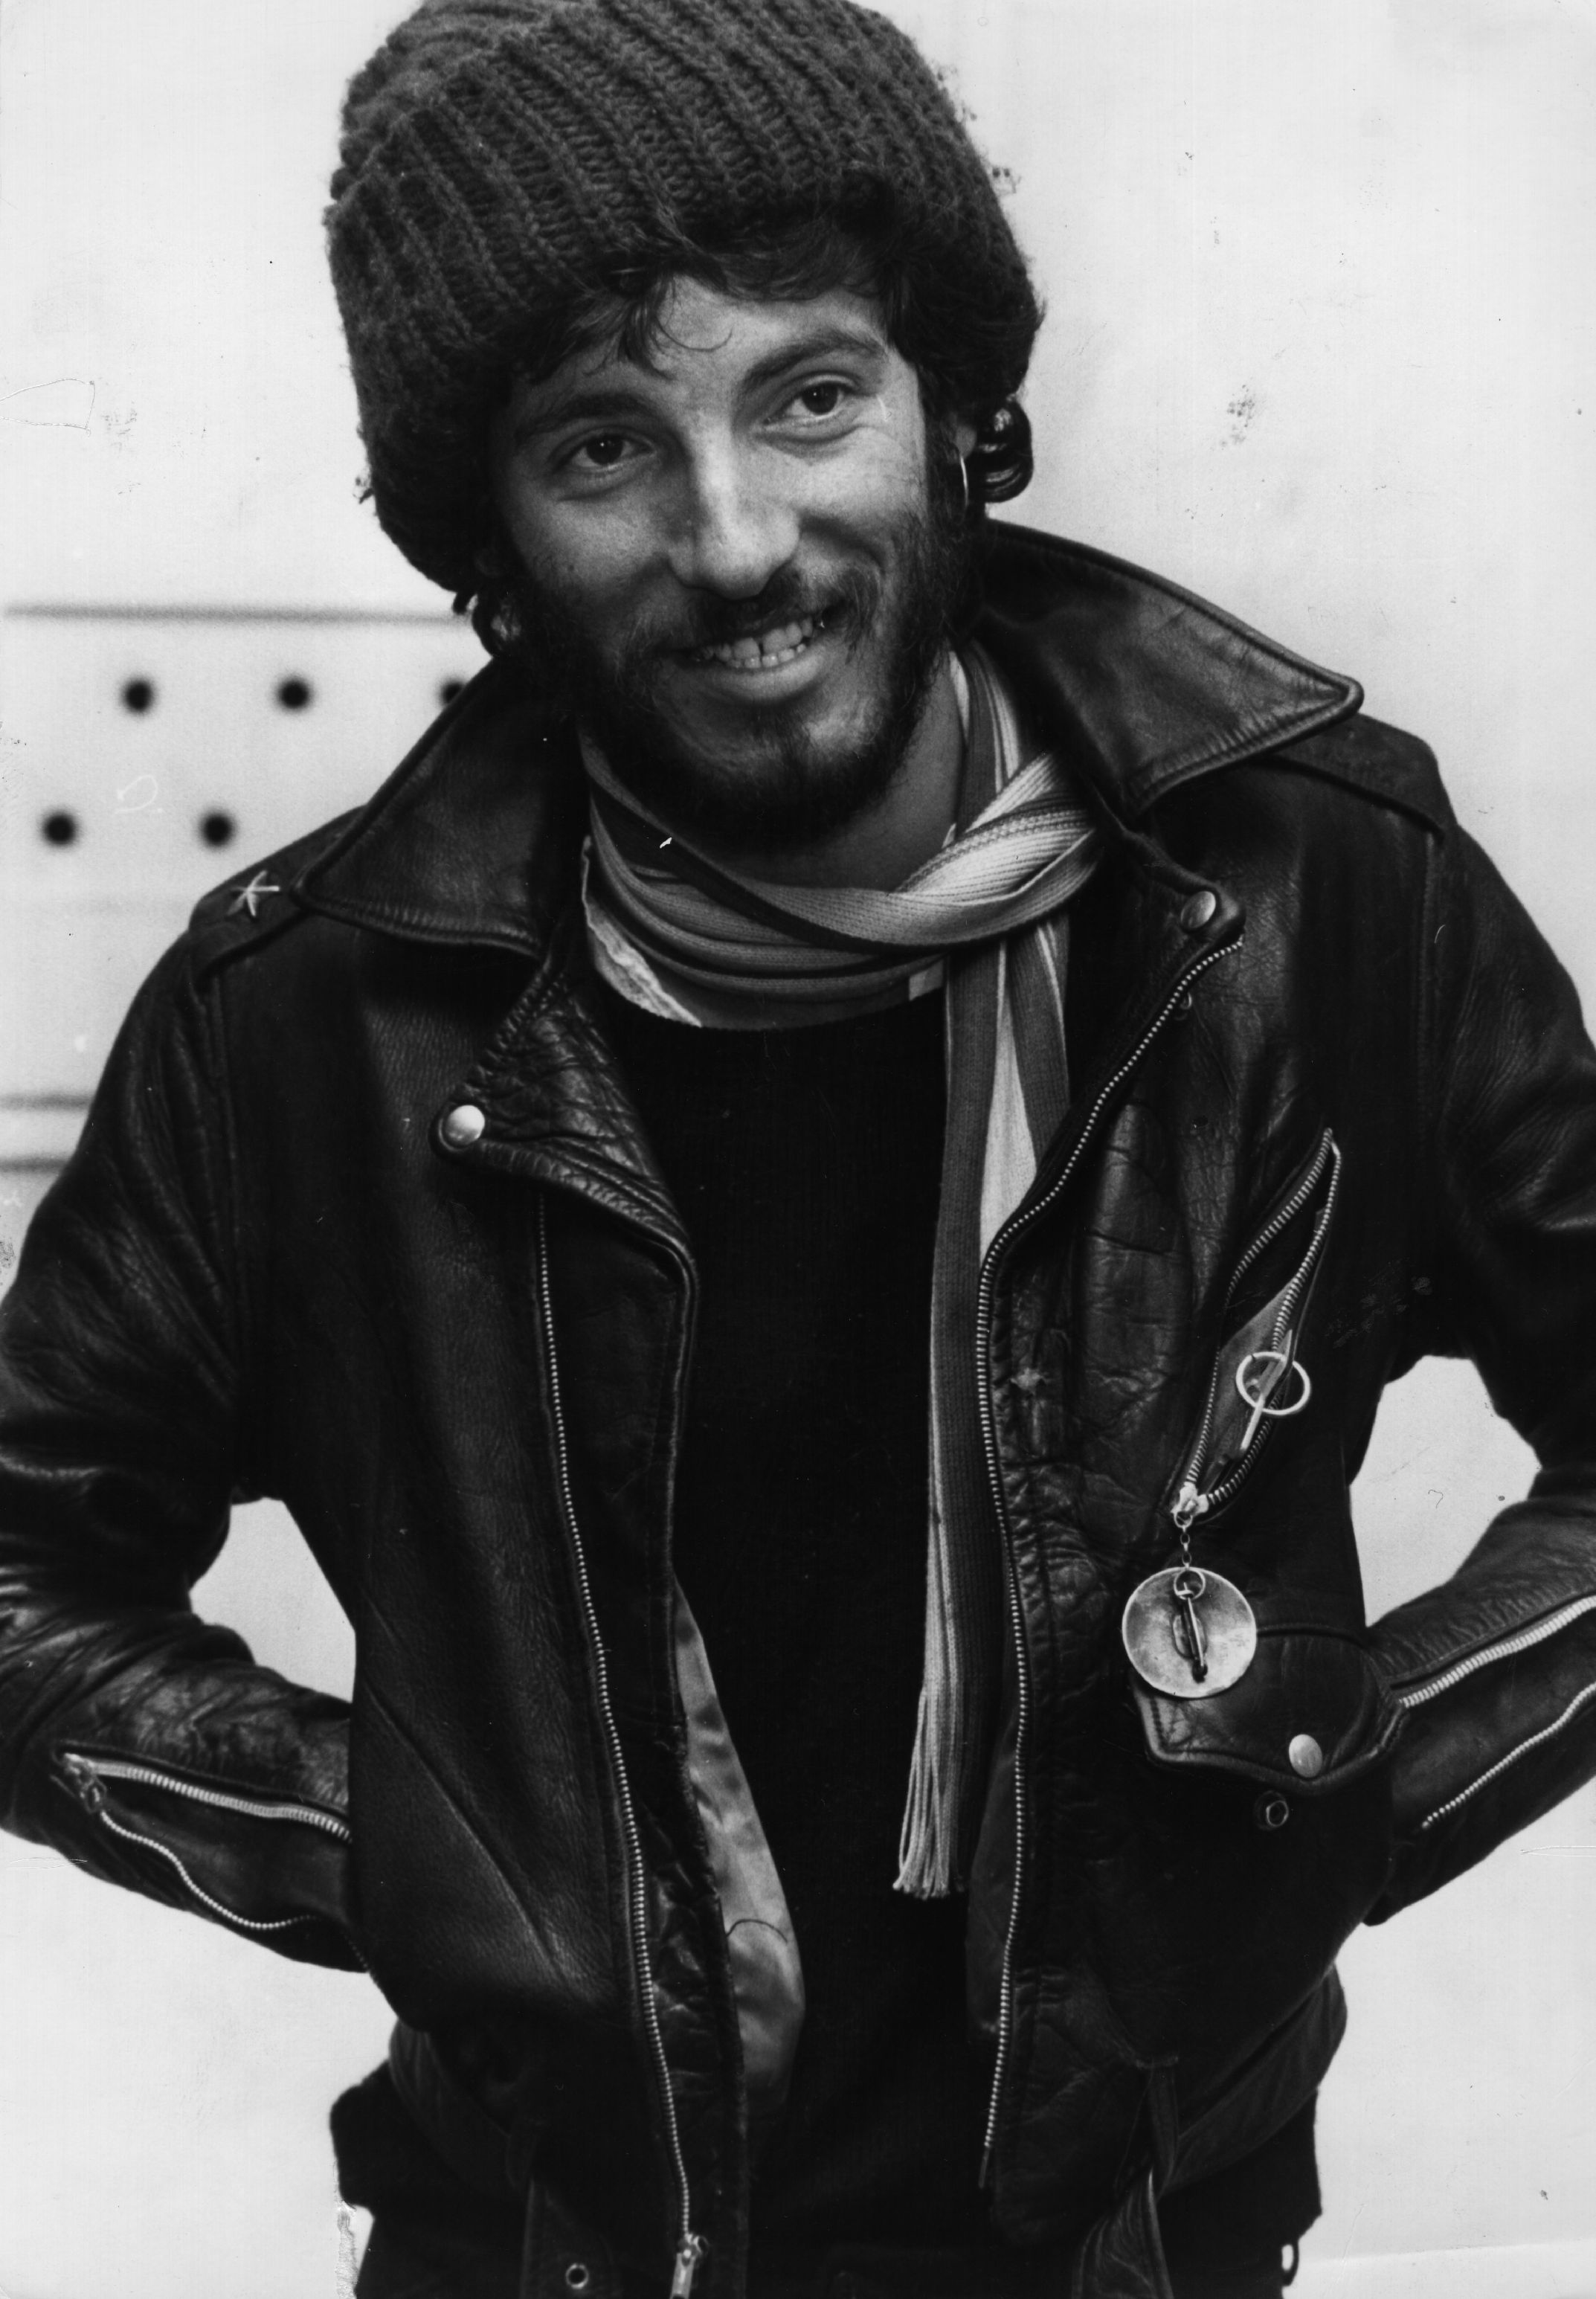 Bruce Springsteen in 1975